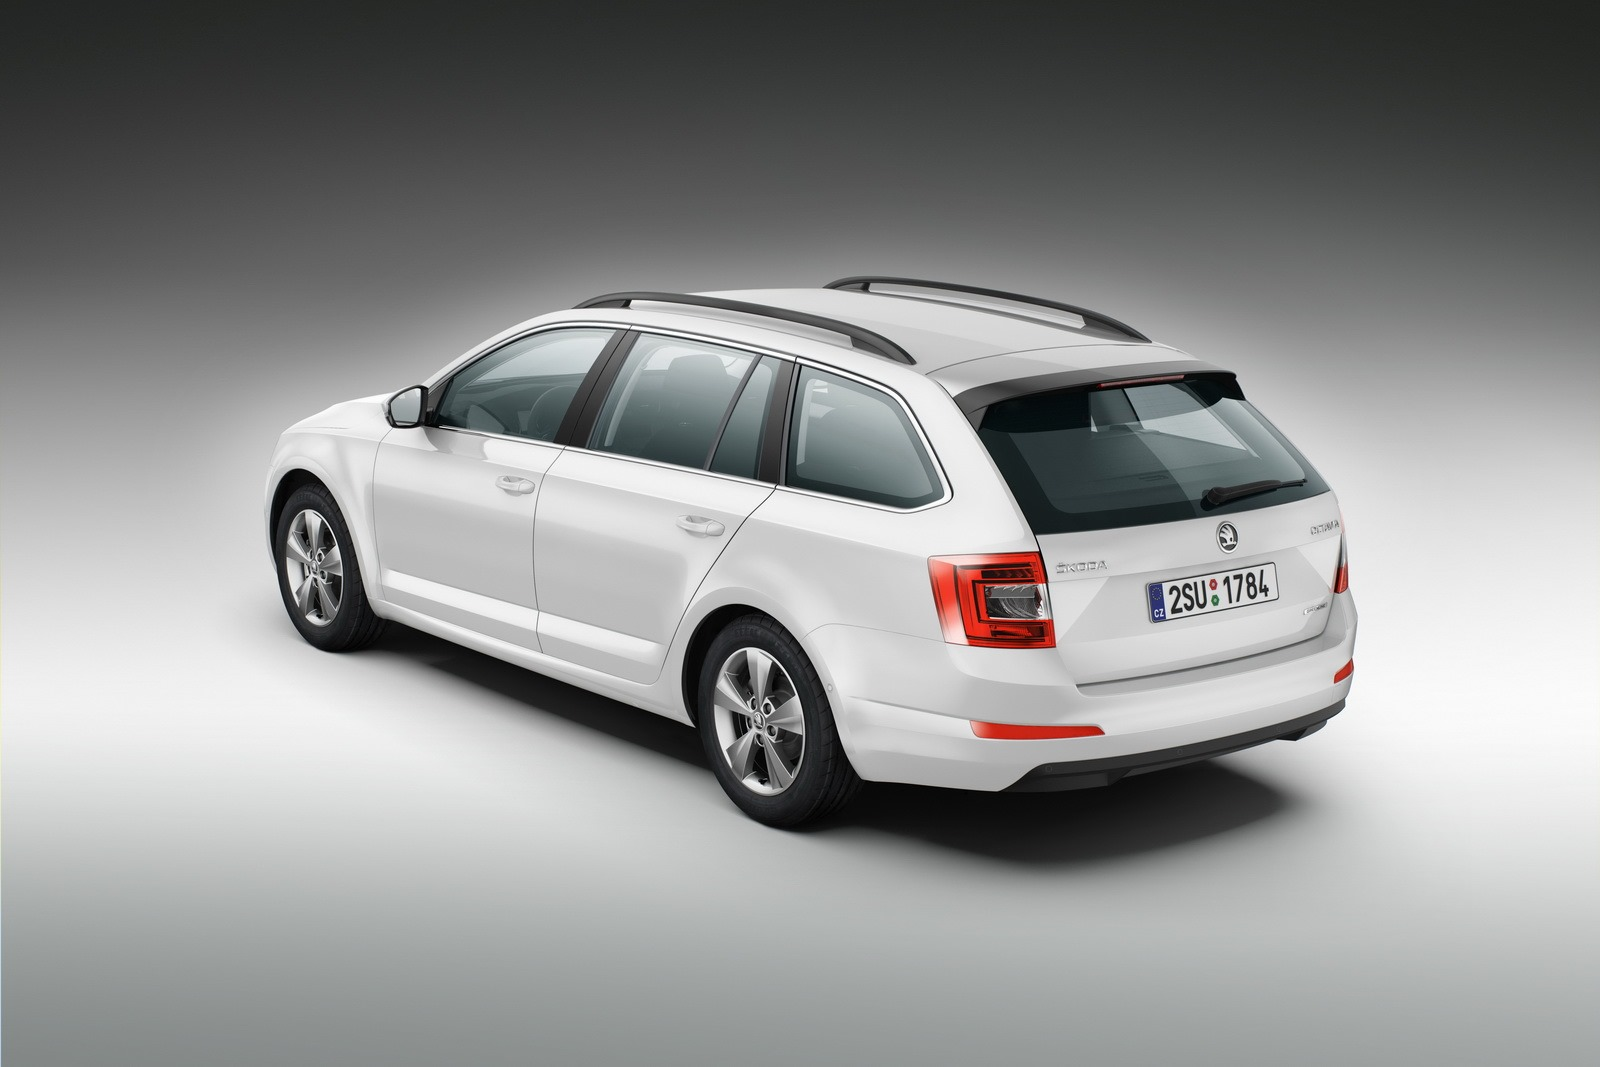 Skoda Octavia Greenline 3 New Skoda Octavia Greenline Announced 3 3 L 100km And 87